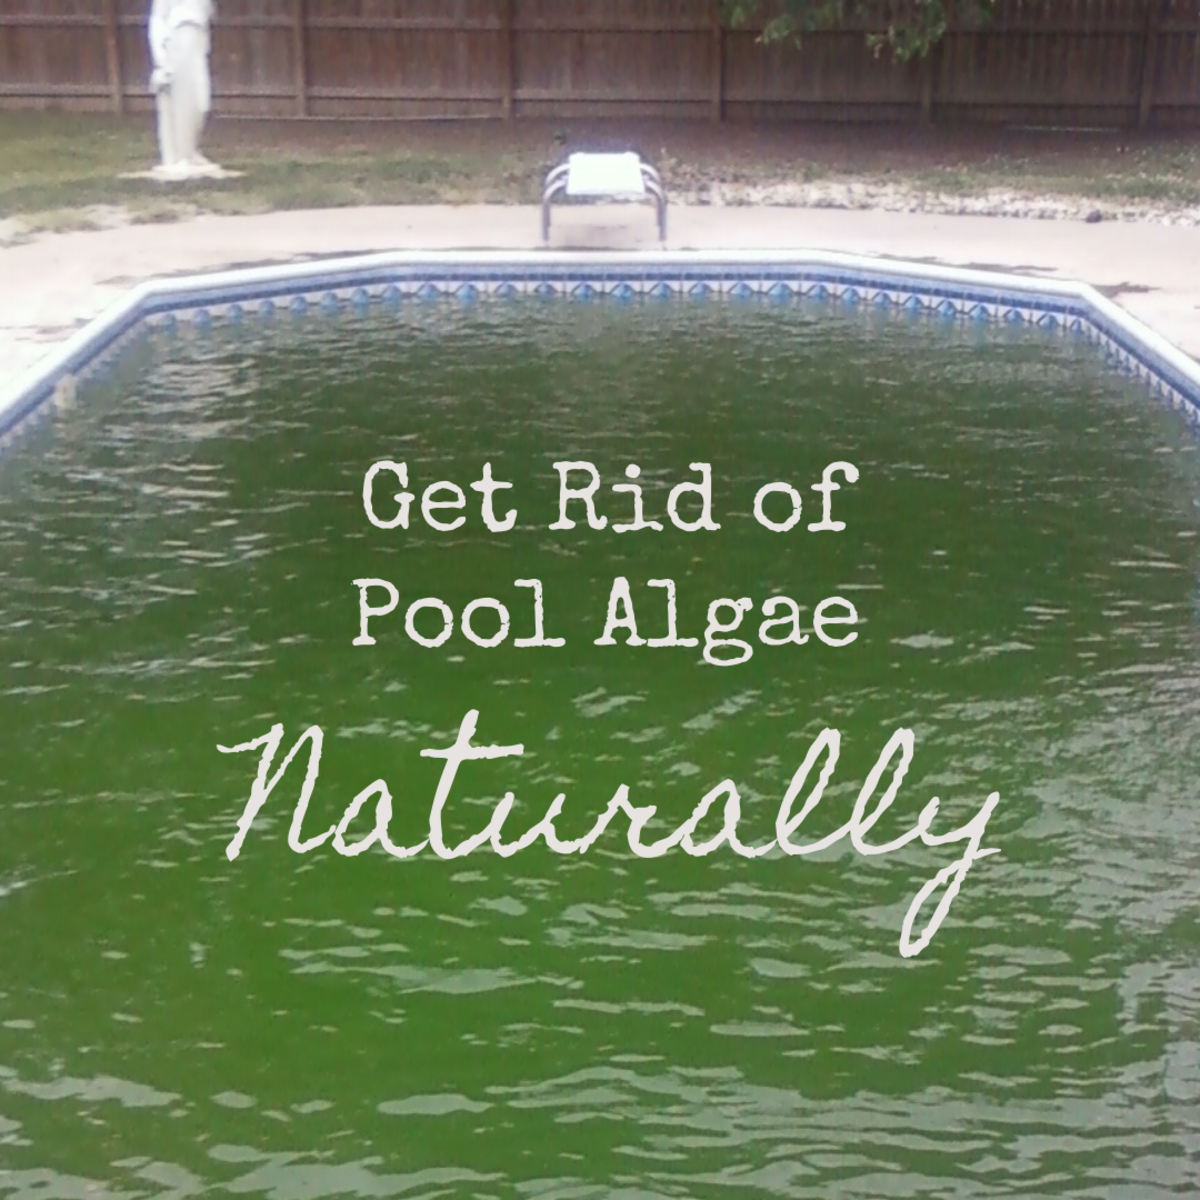 You don't need harsh chemicals to treat the algae in your pool.